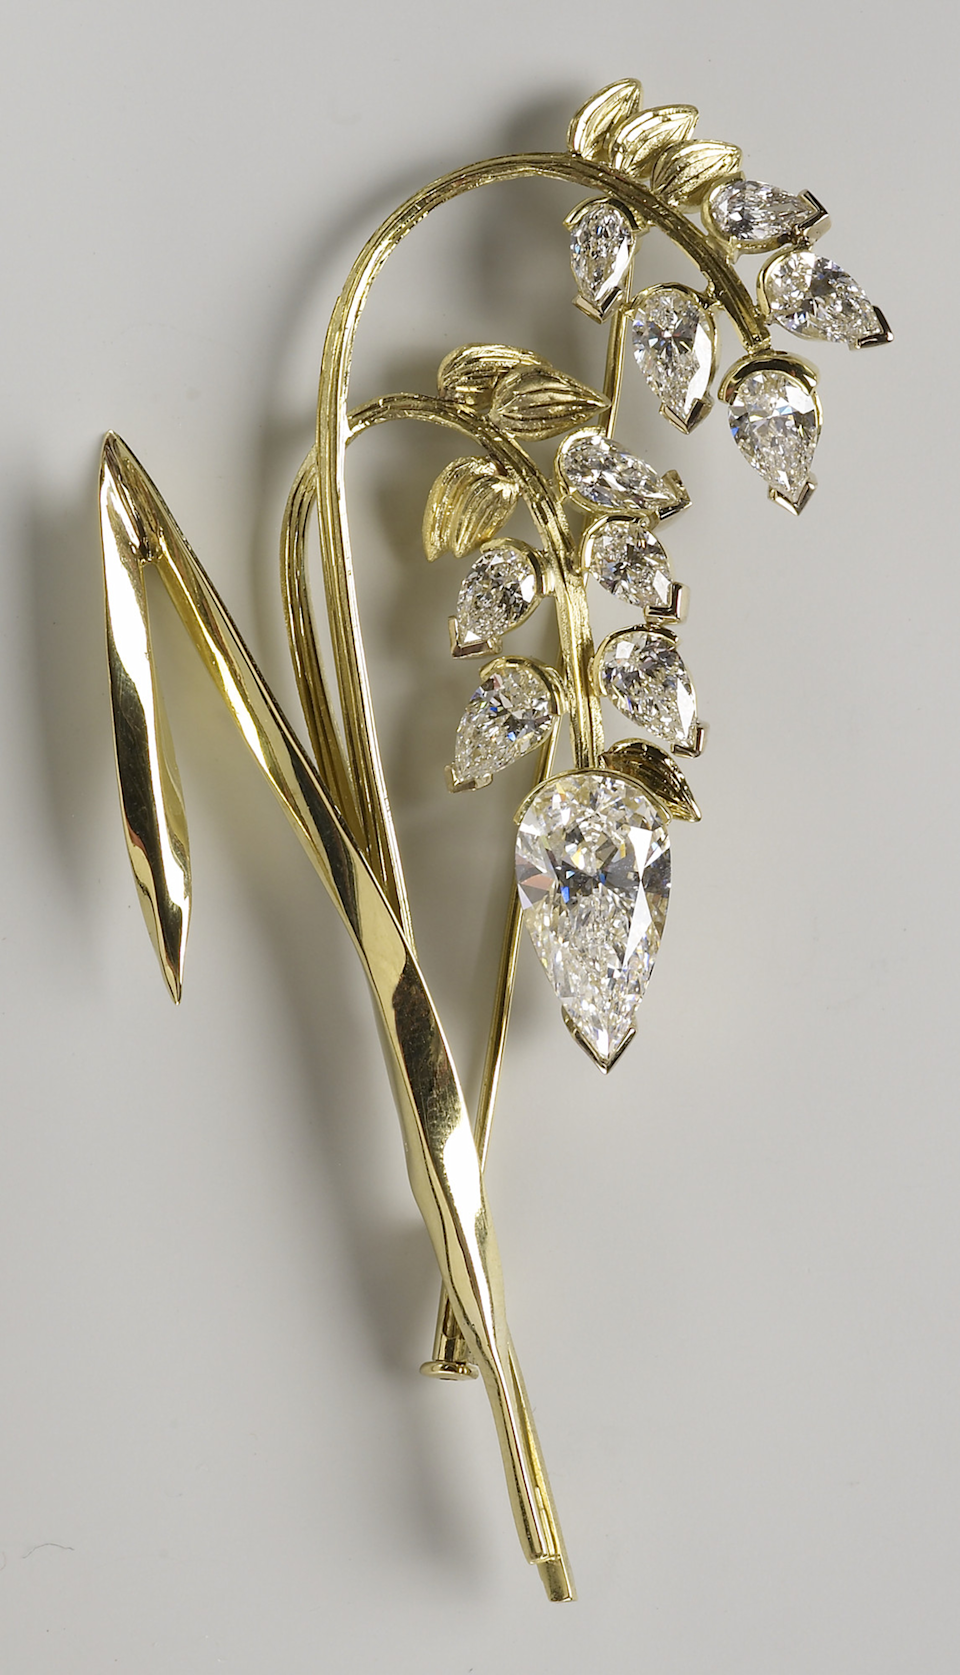 The President of Botswana presented the brooch to the Queen in 2007. Photo: Royal Collection Trust